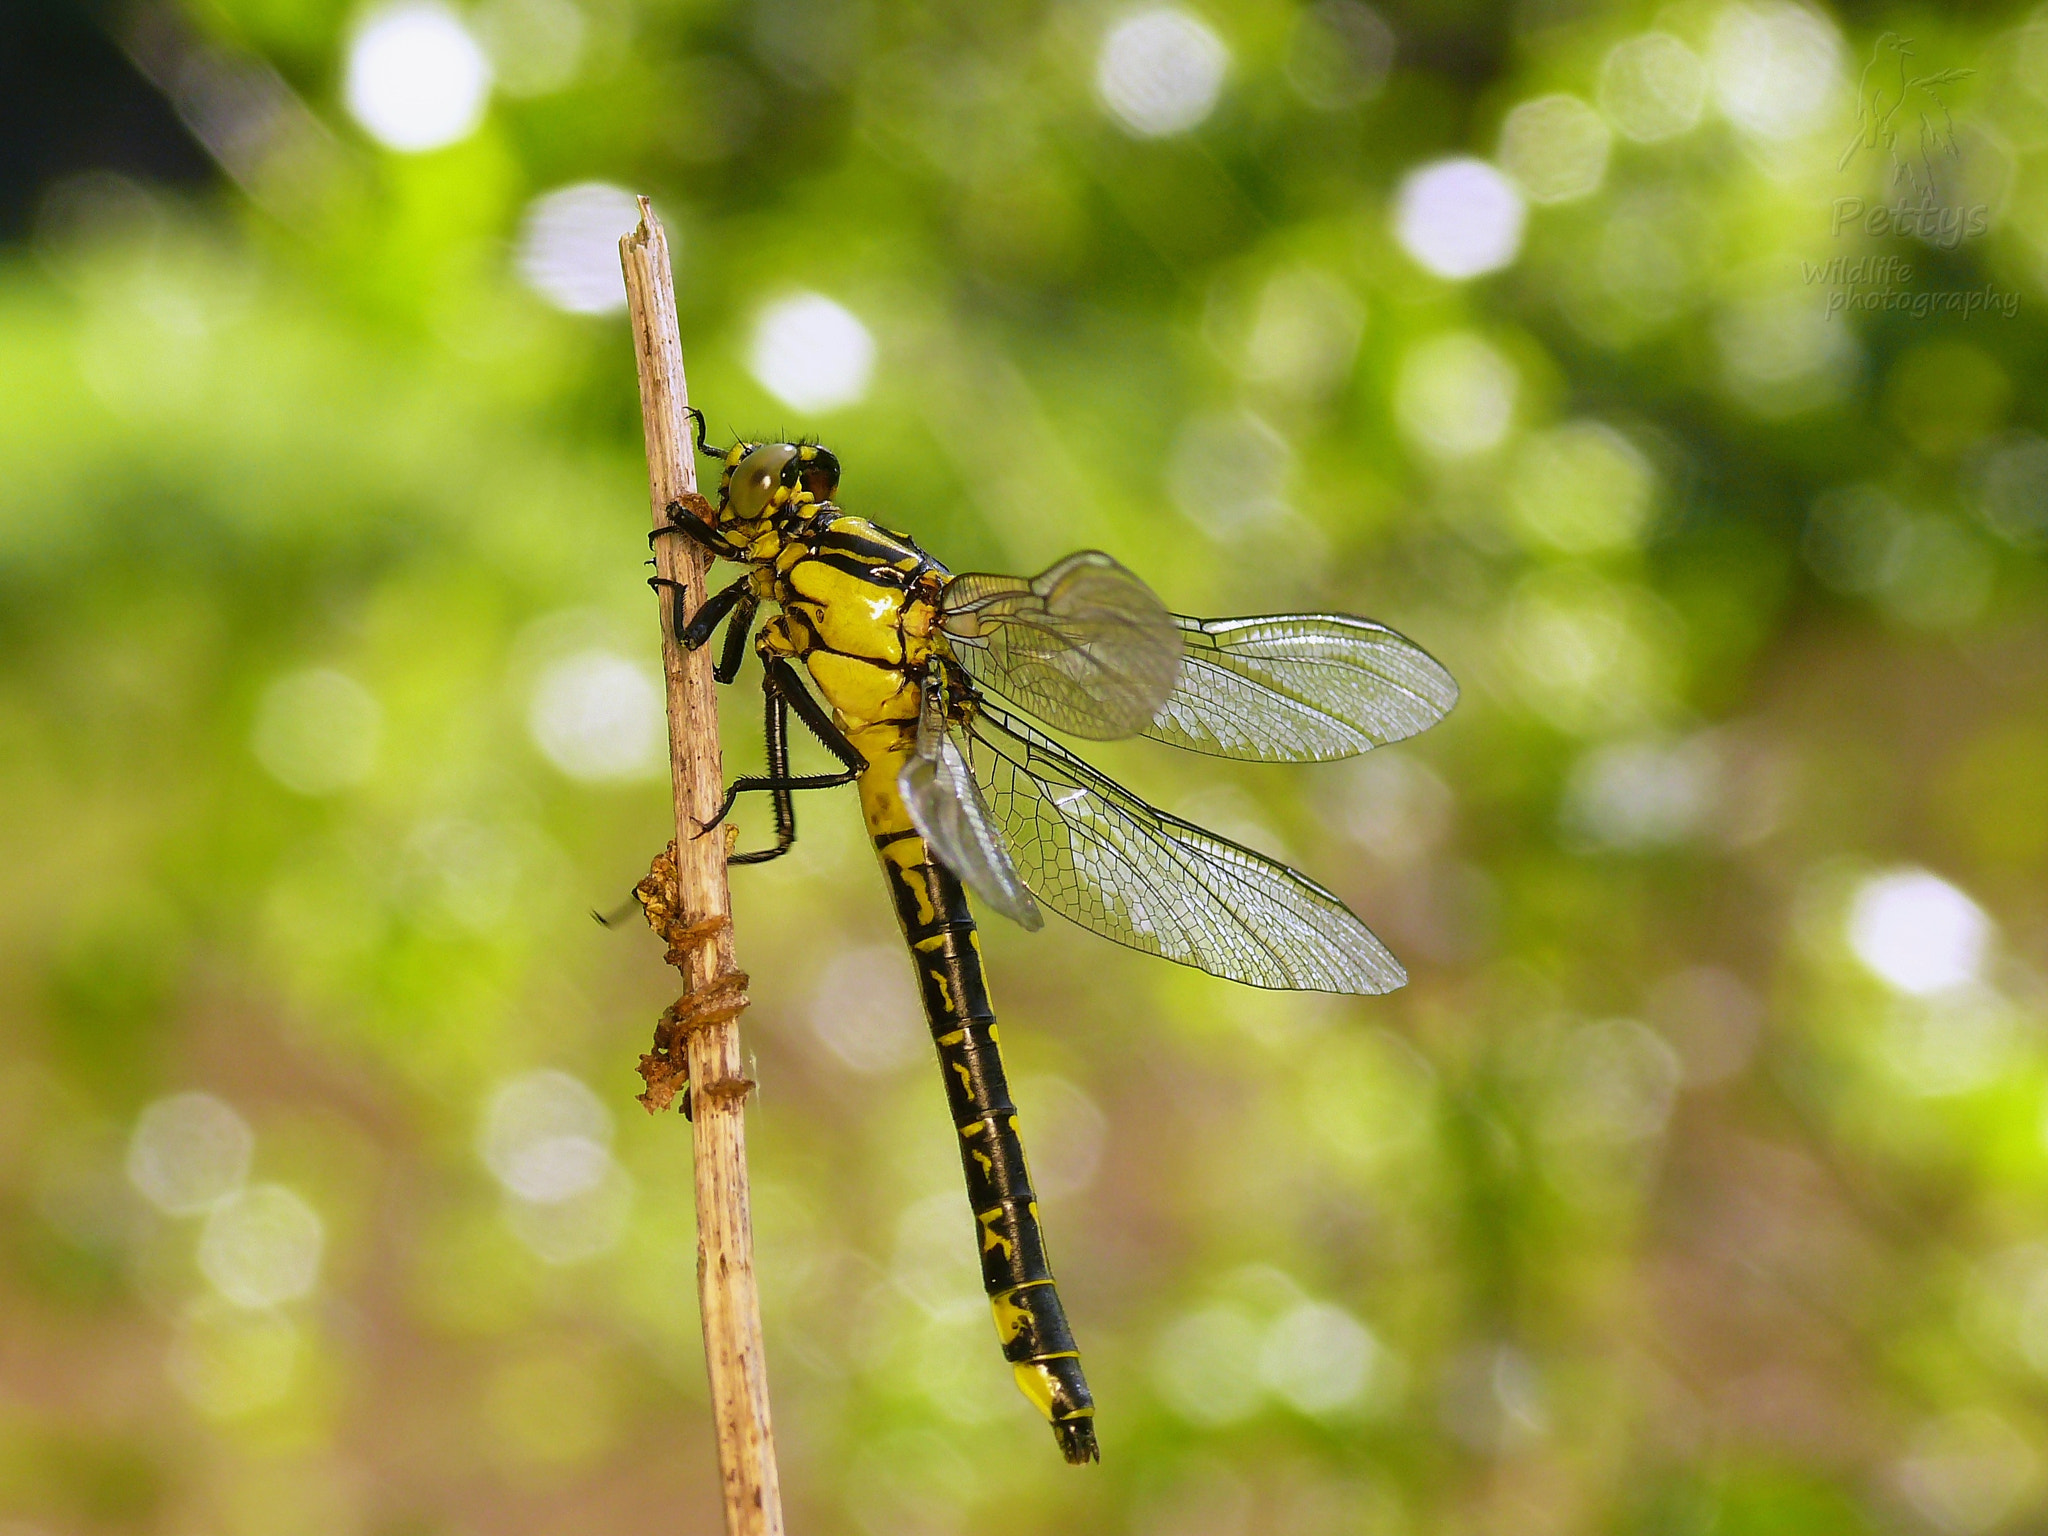 Photograph Golden dragonfly by Petr Podroužek on 500px